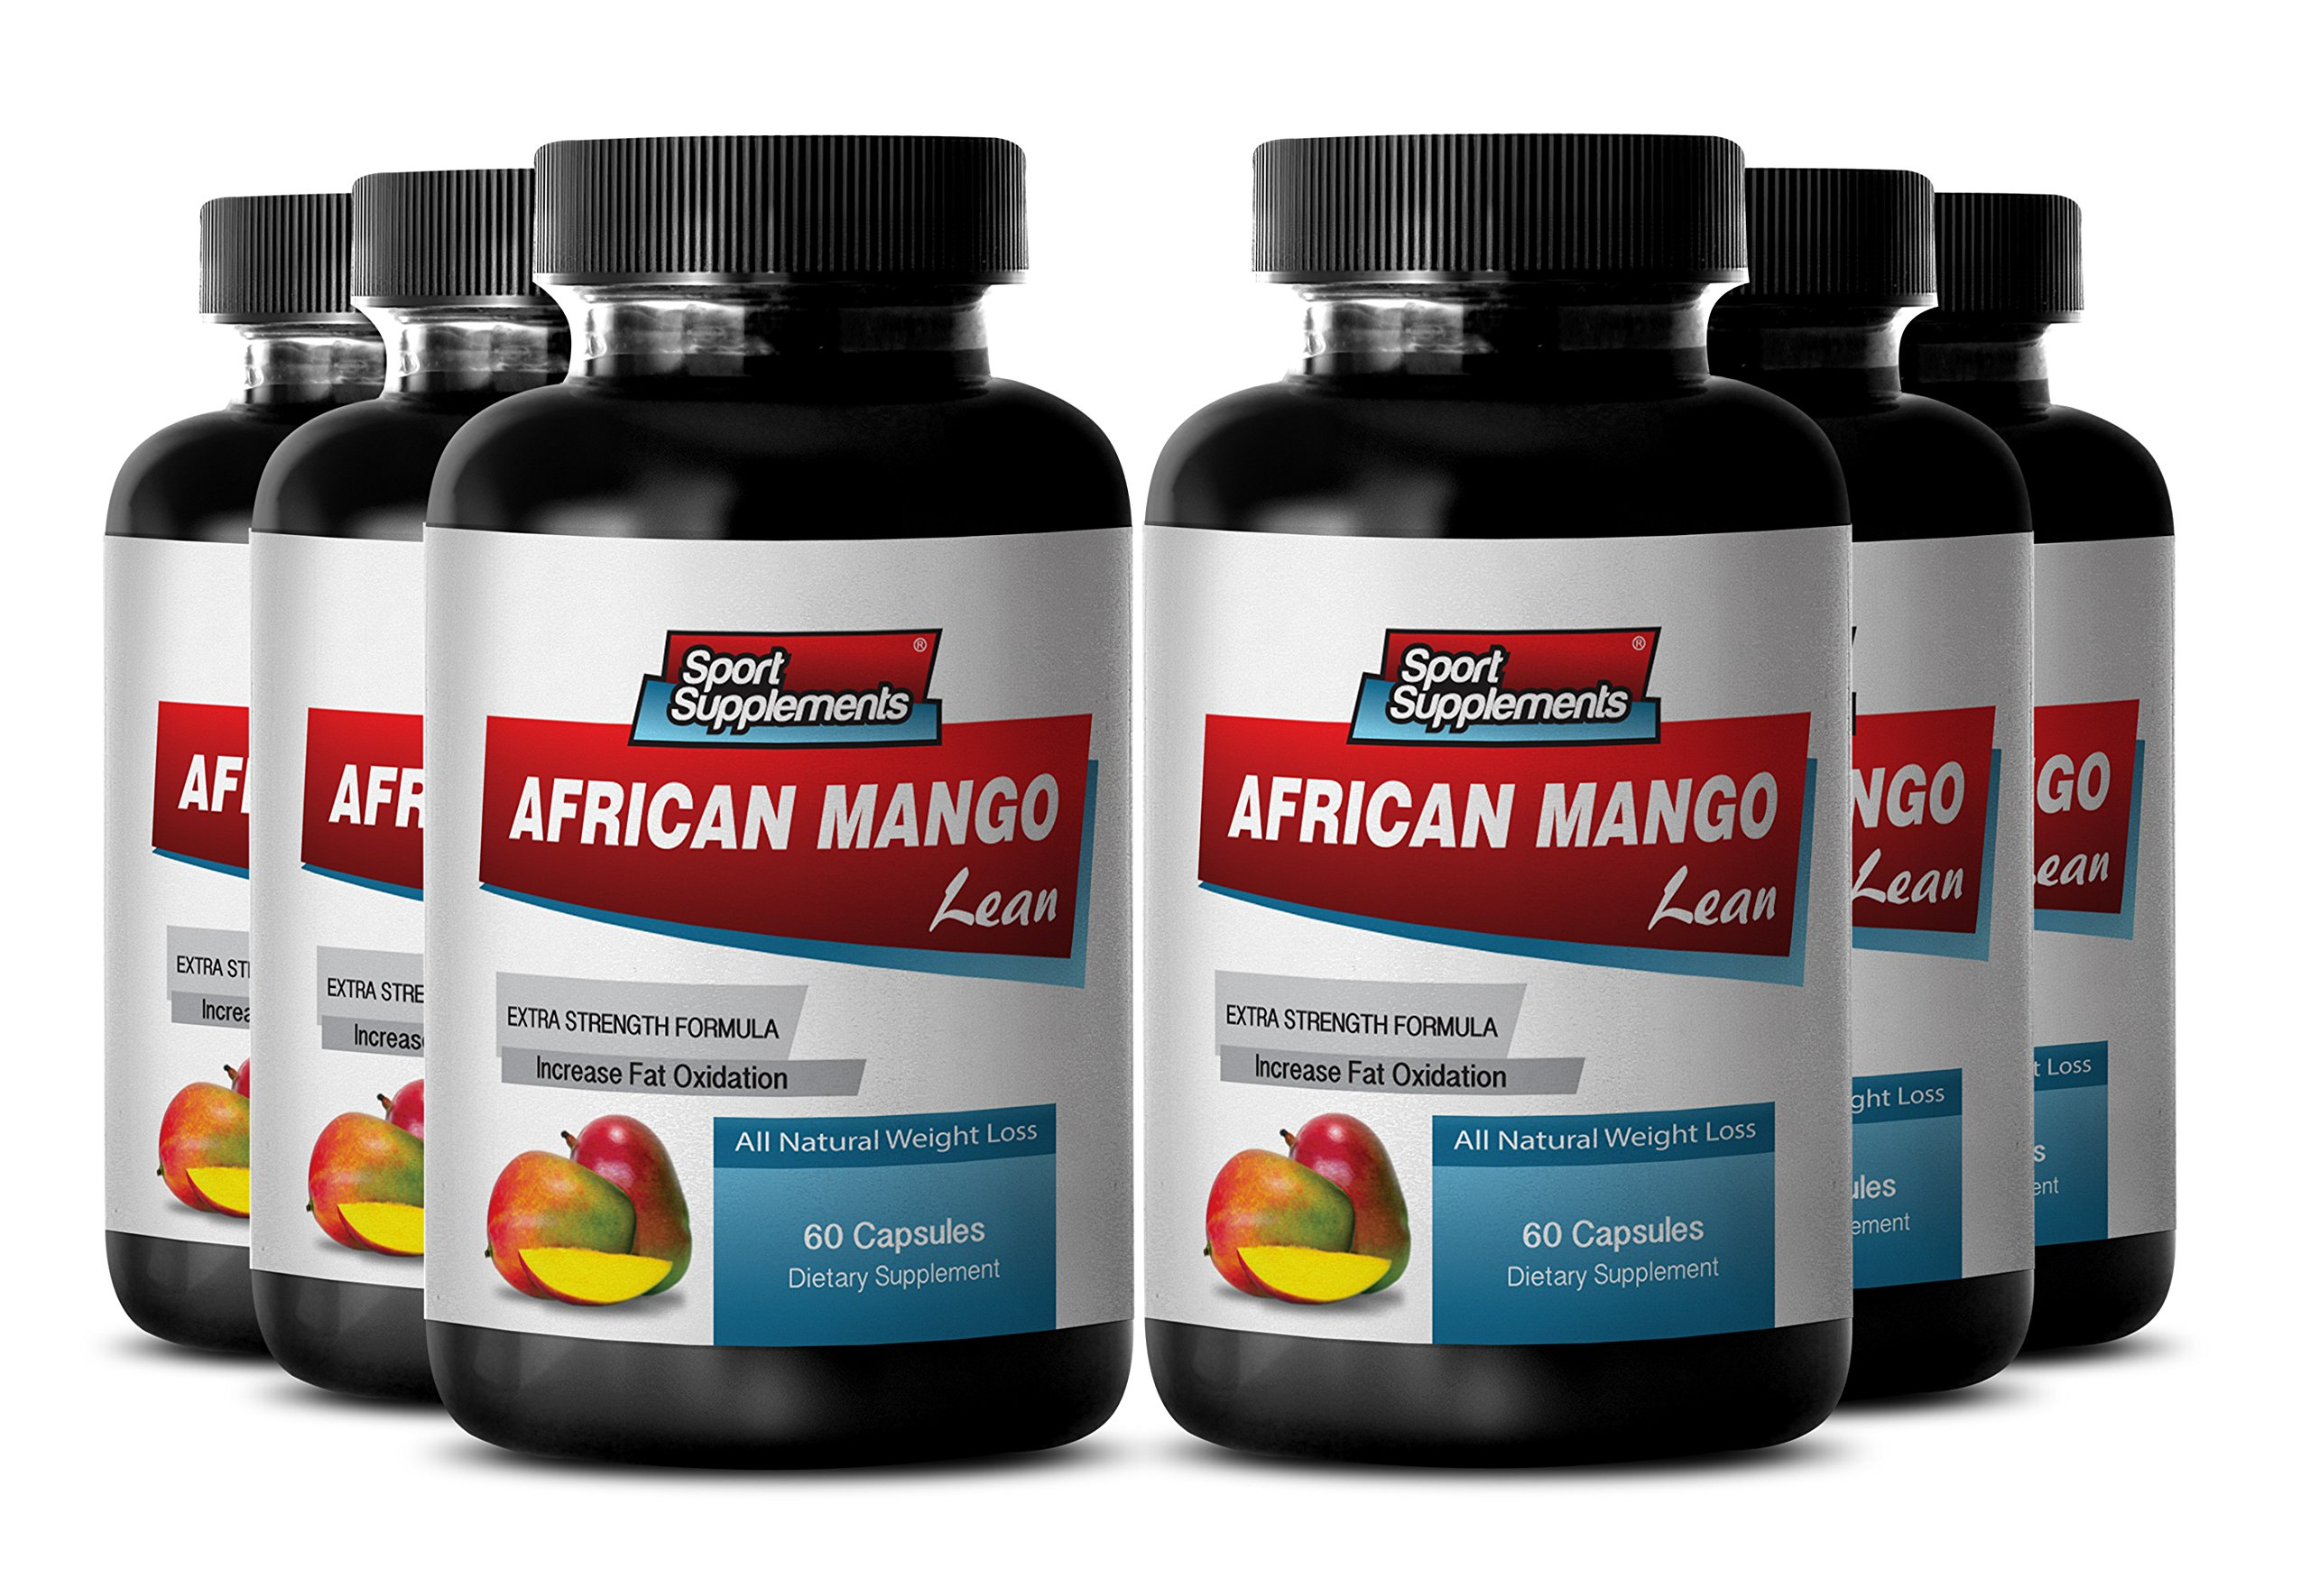 Burn calories - AFRICAN MANGO EXTRACT with Green Tea, Resveratrol, Kelp, Grapefruit 1200 Mg - African mango detox - 6 Bottles 360 capsules by Sport Supplements